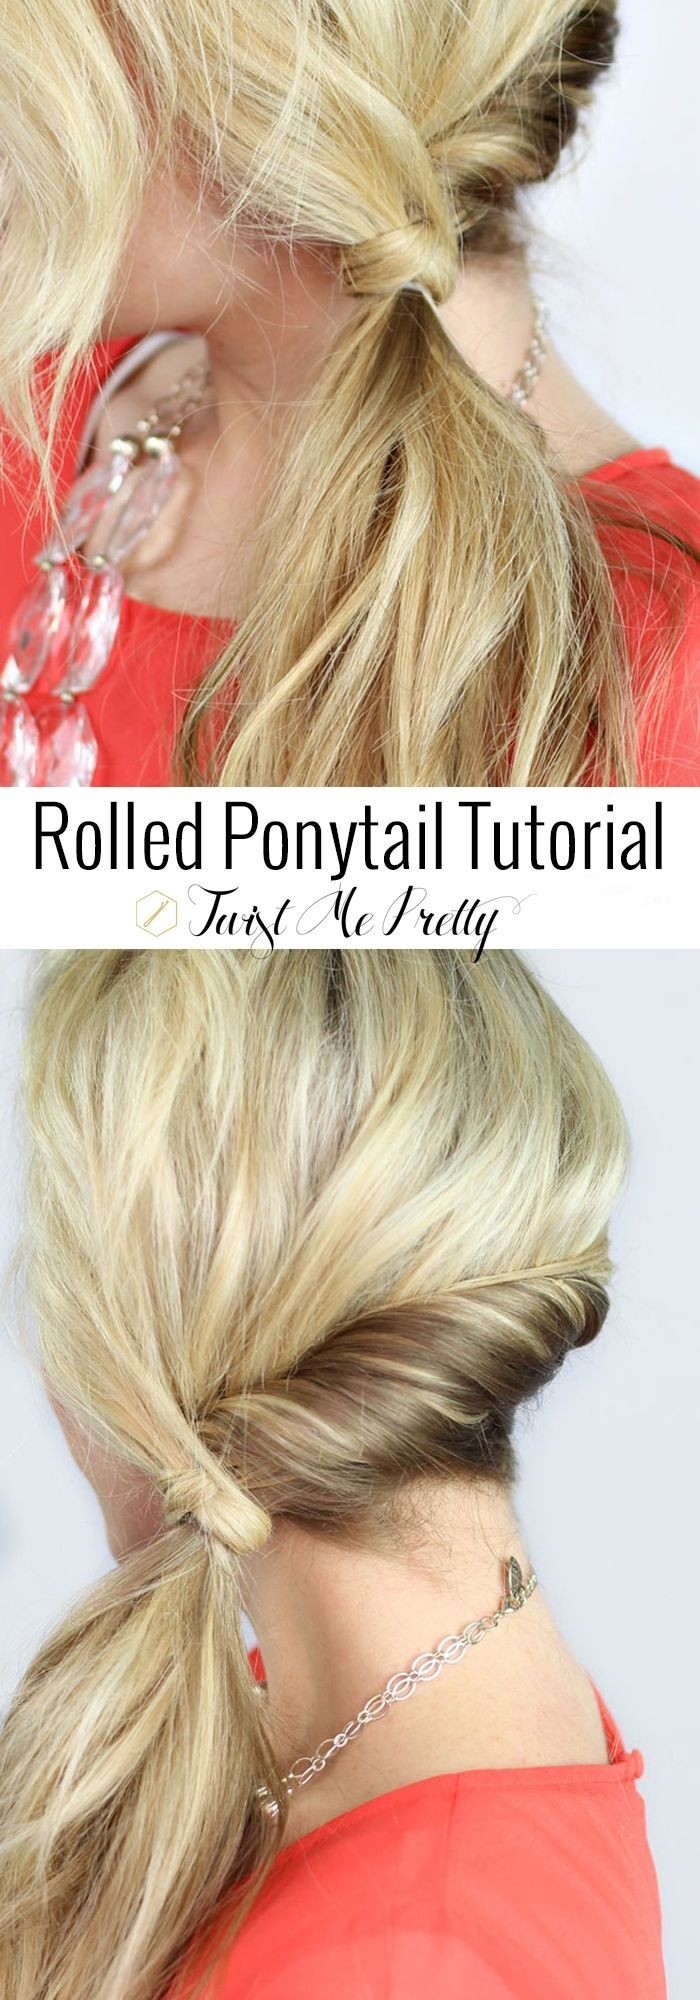 pony style hair 15 everyday hairstyles 2019 chic daily haircuts for 4673 | Rolled Ponytail Tutorial Cute Everyday Hairstyles